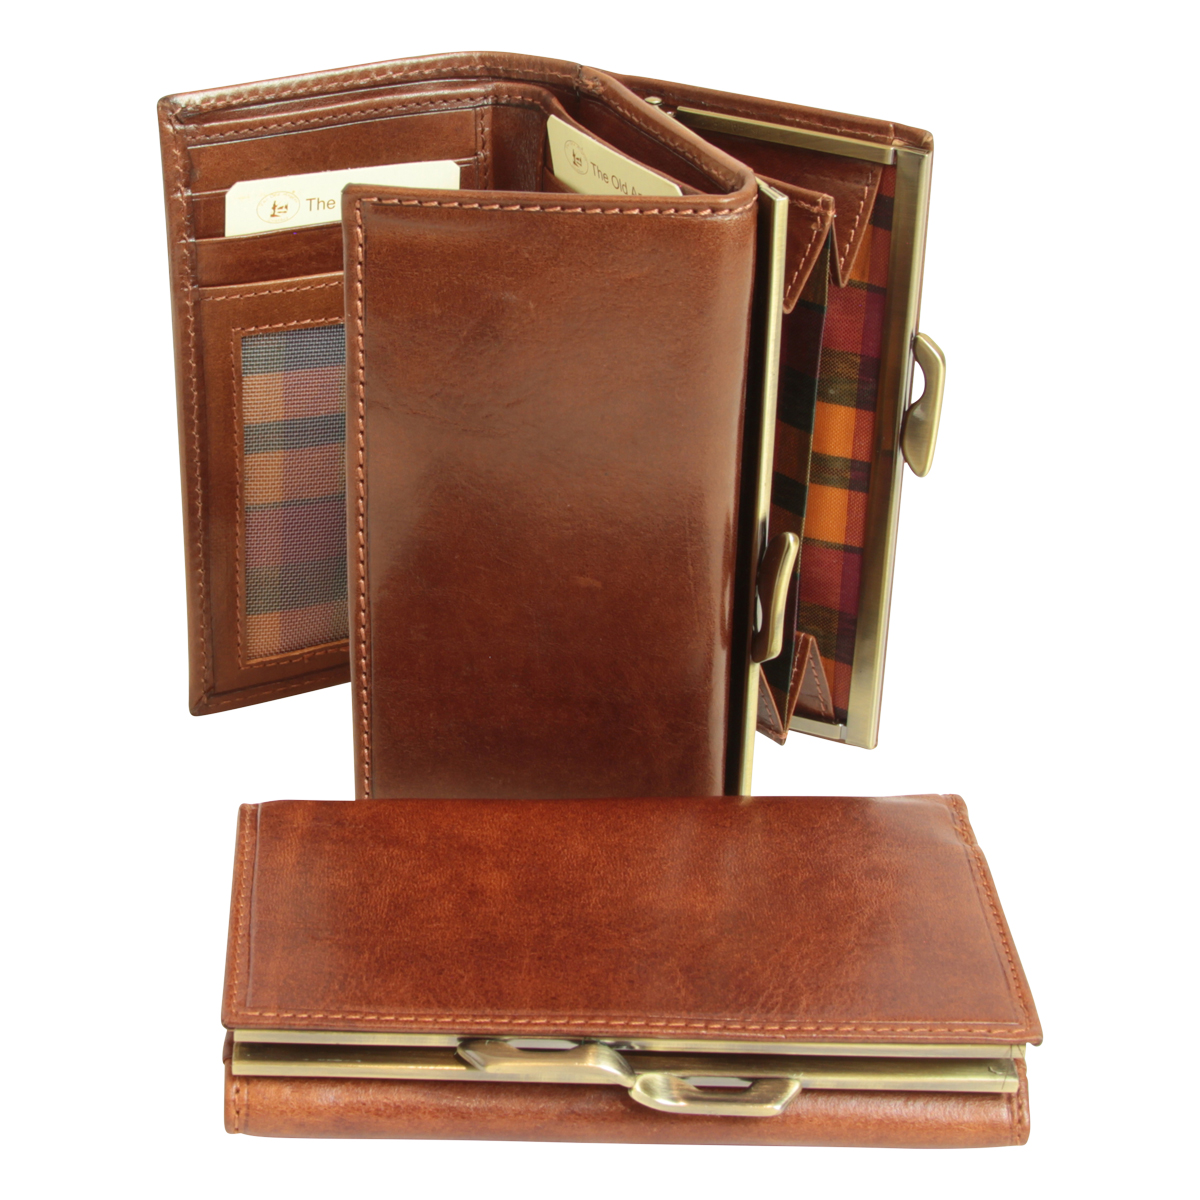 Leather Trifold Wallet with snap closure - Brown | 507205MA E | Old Angler Firenze